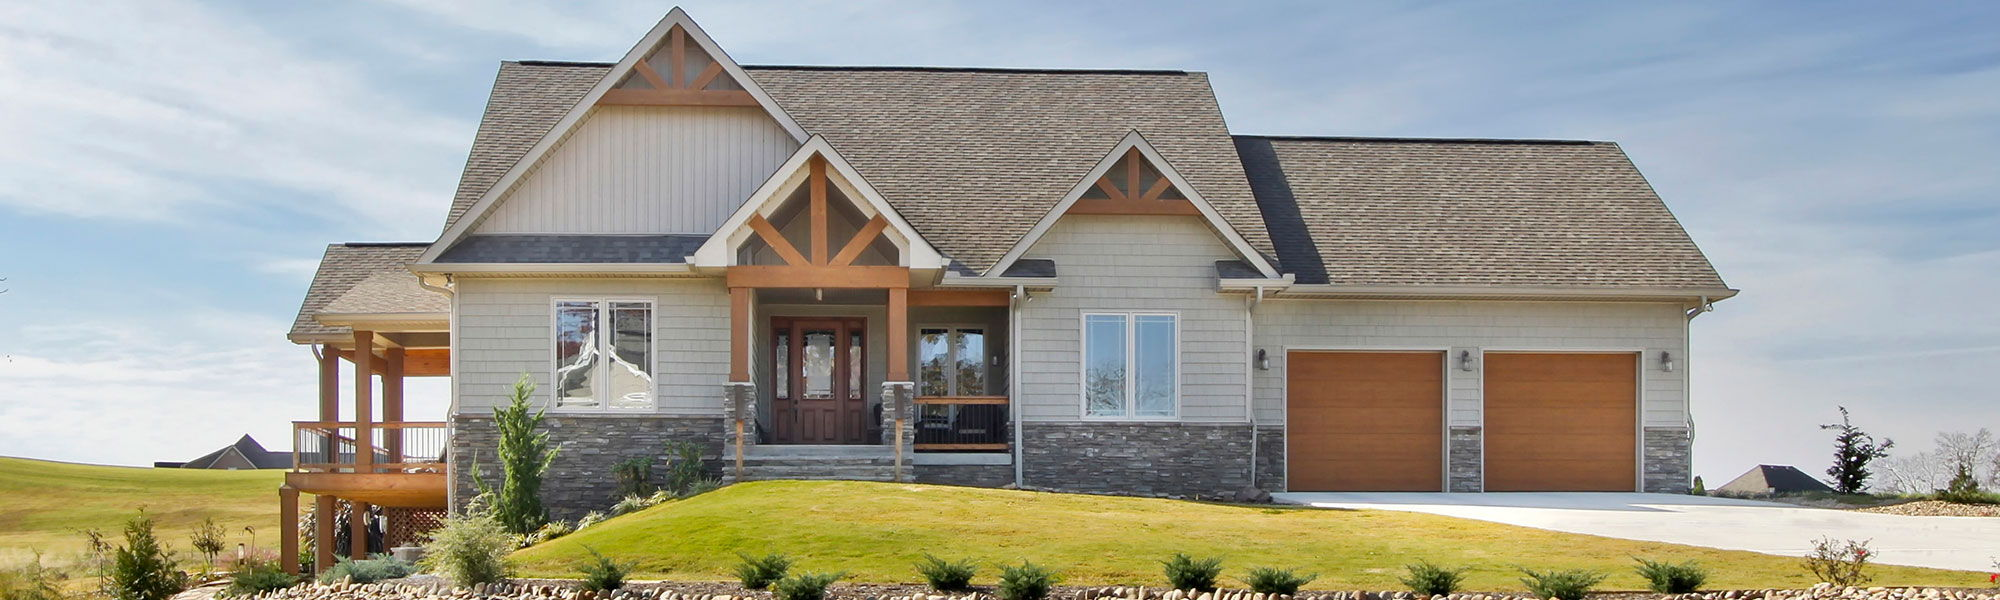 Keener Homes Tellico Village Home Builder